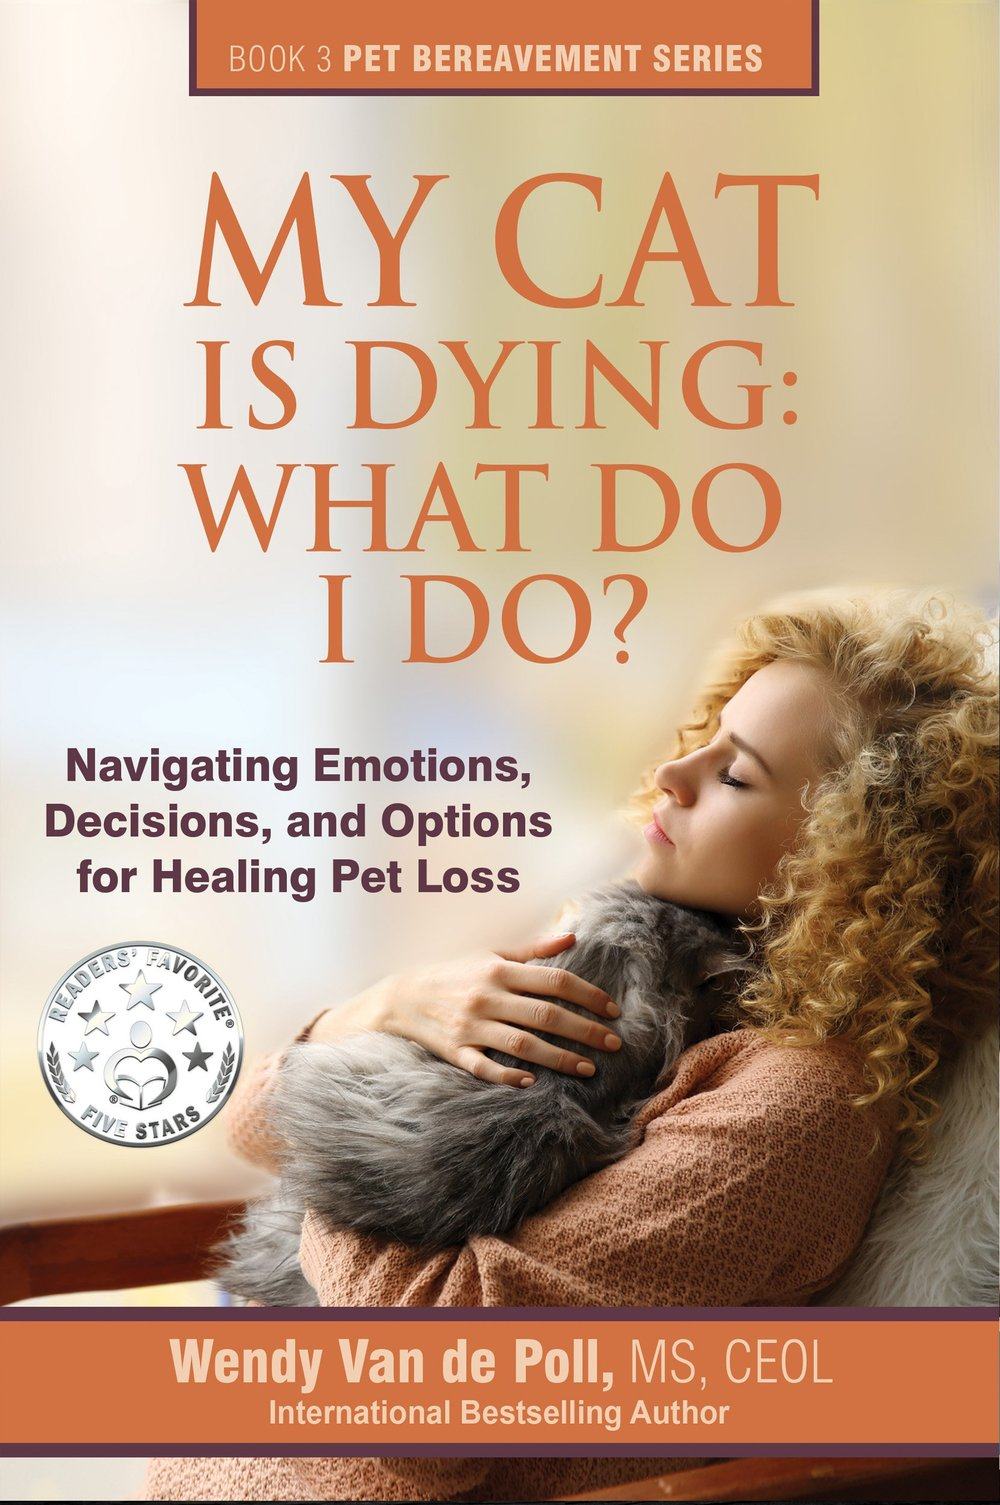 My Cat is Dying Book